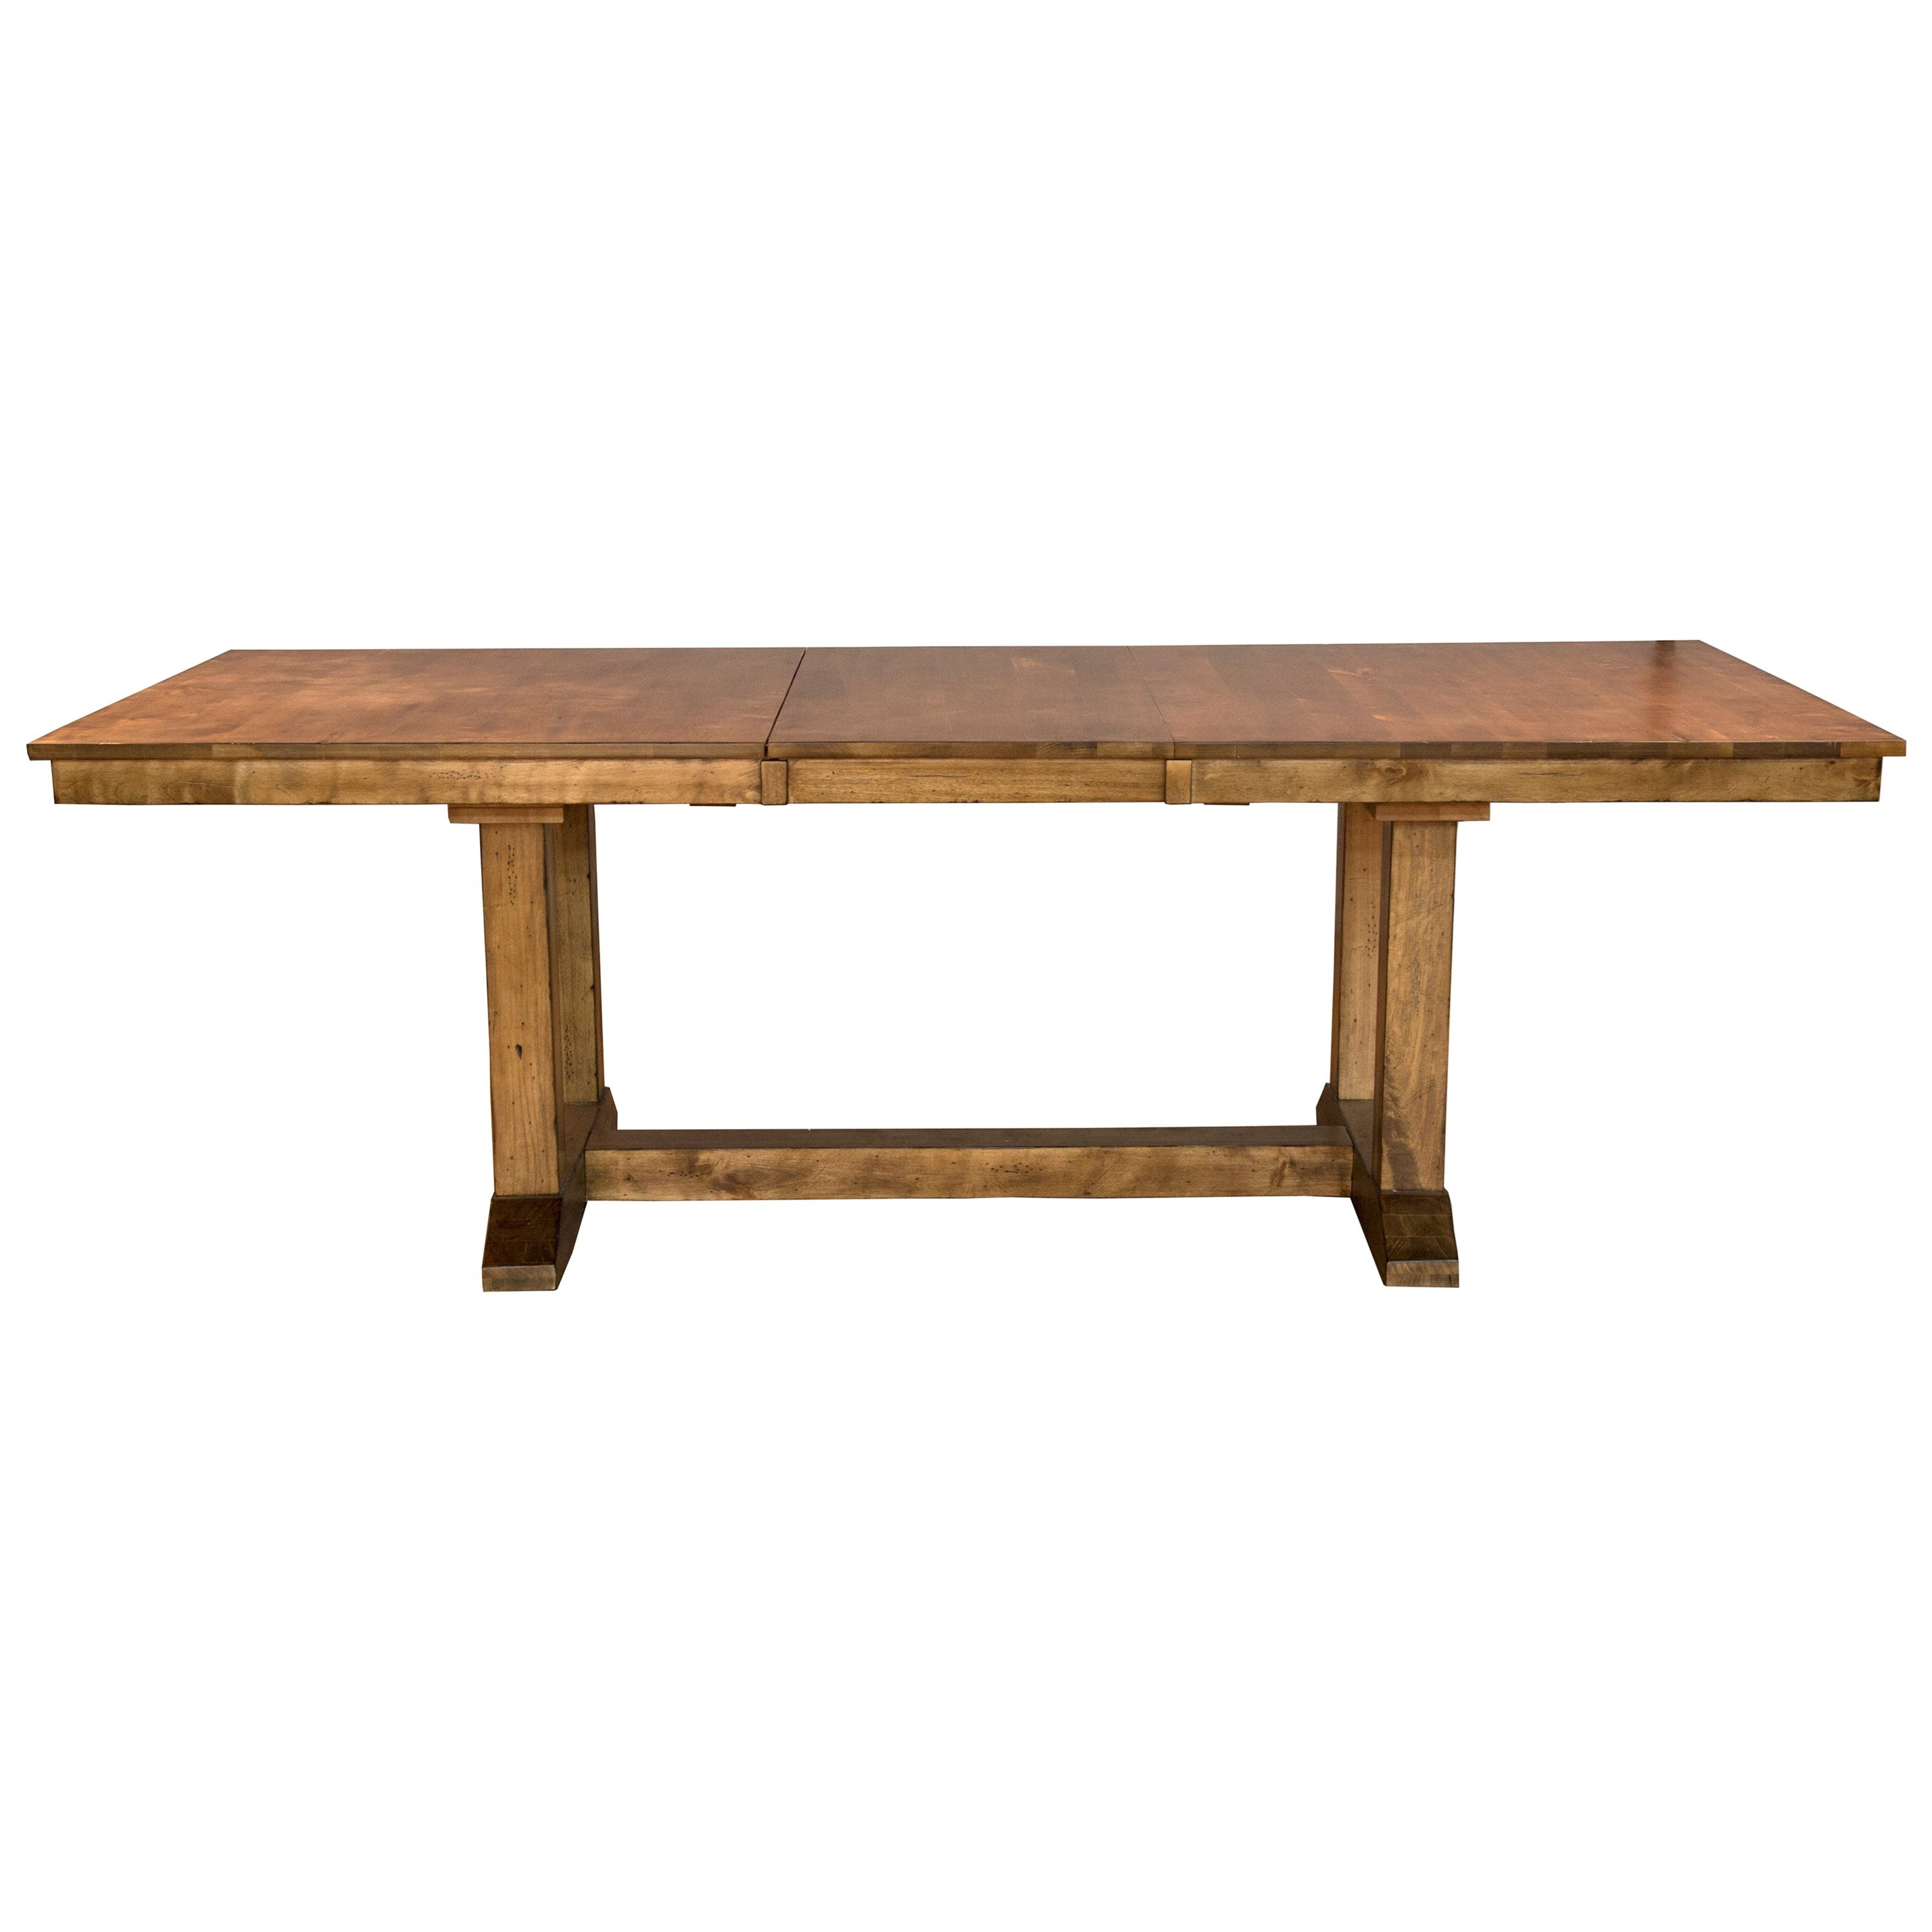 Bennett Trestle Dining Table by AAmerica at Furniture Superstore - Rochester, MN